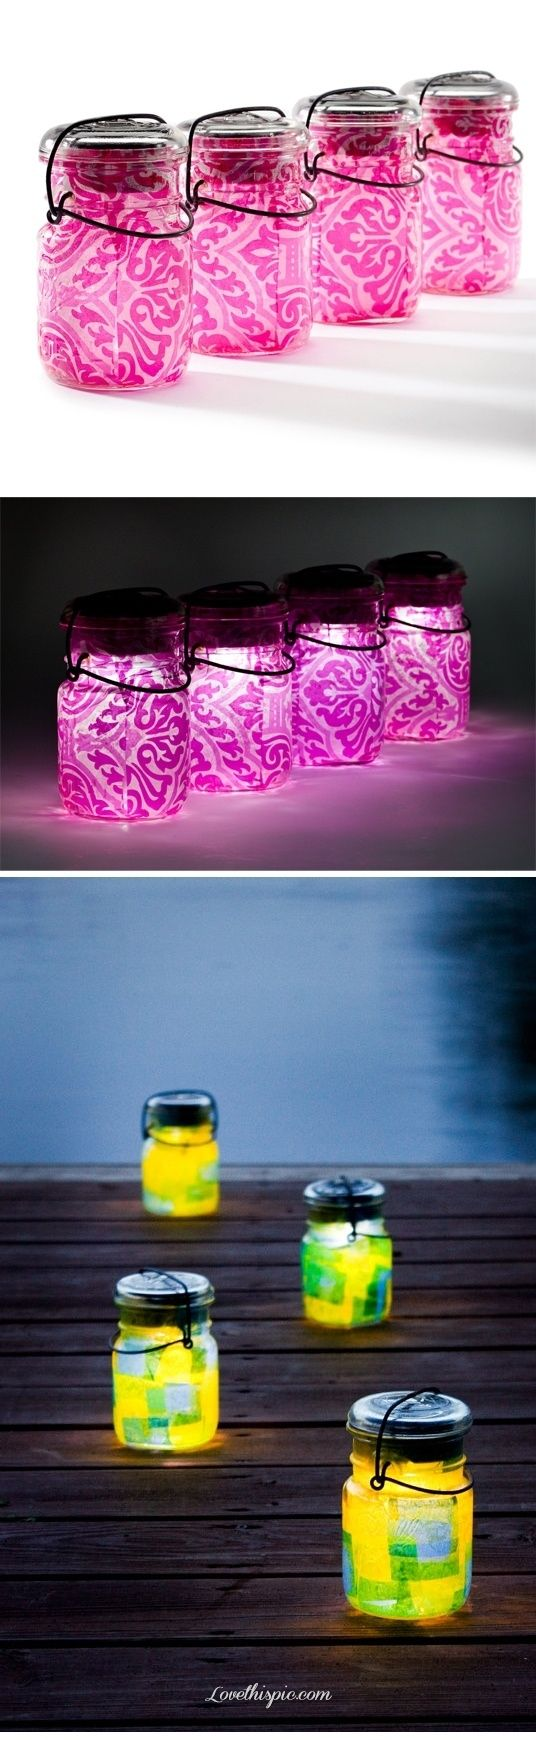 Outdoor Party Glowing Jars party lights outdoor jars glow party ideas parties glowing party idea party idea images party idea photo party idea photos party images party photos